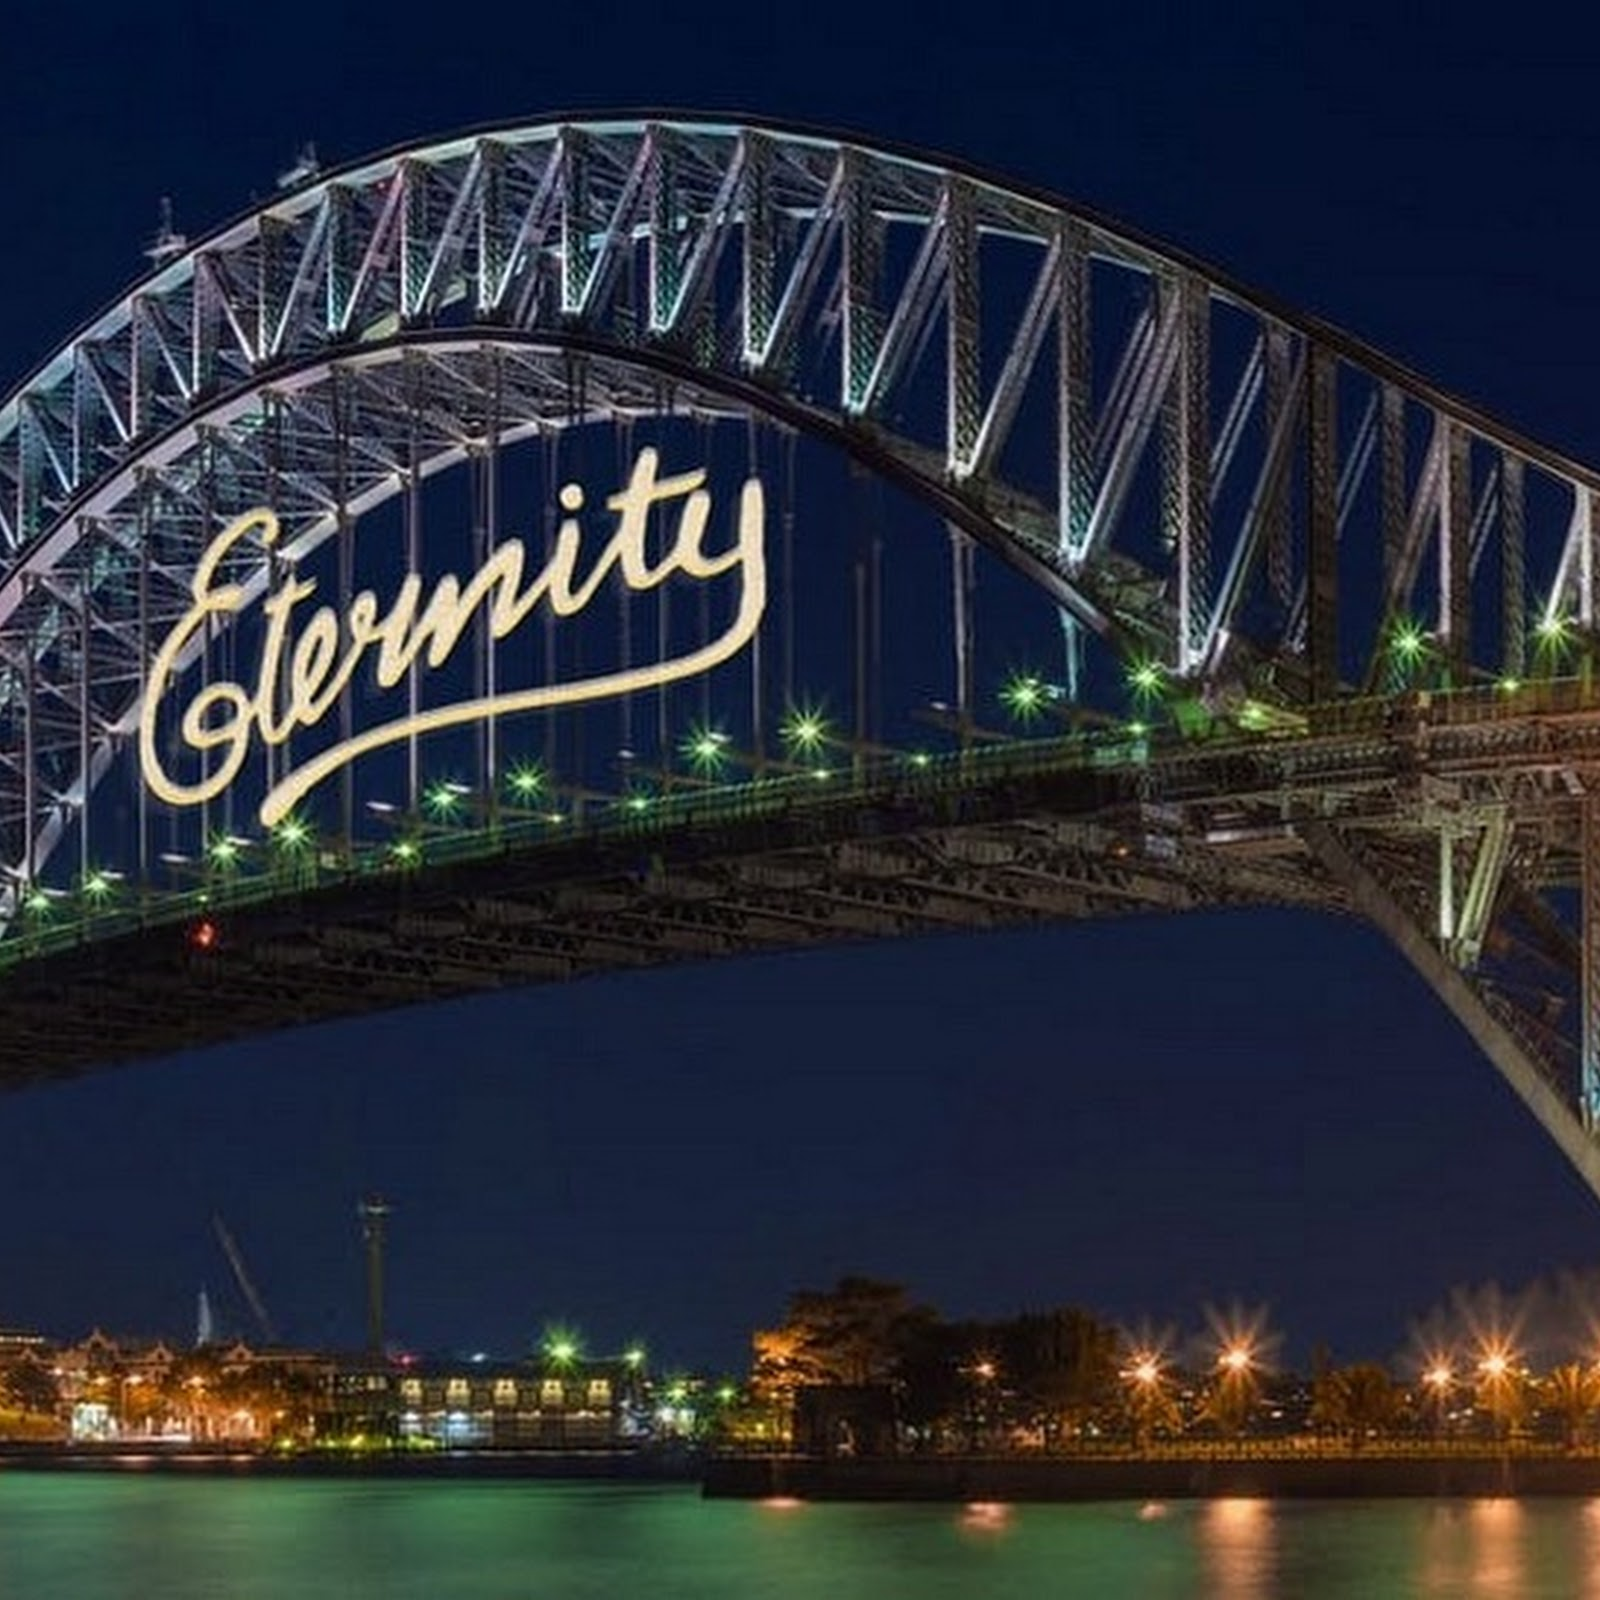 The Story Behind Sydney's 'Eternity' Graffiti